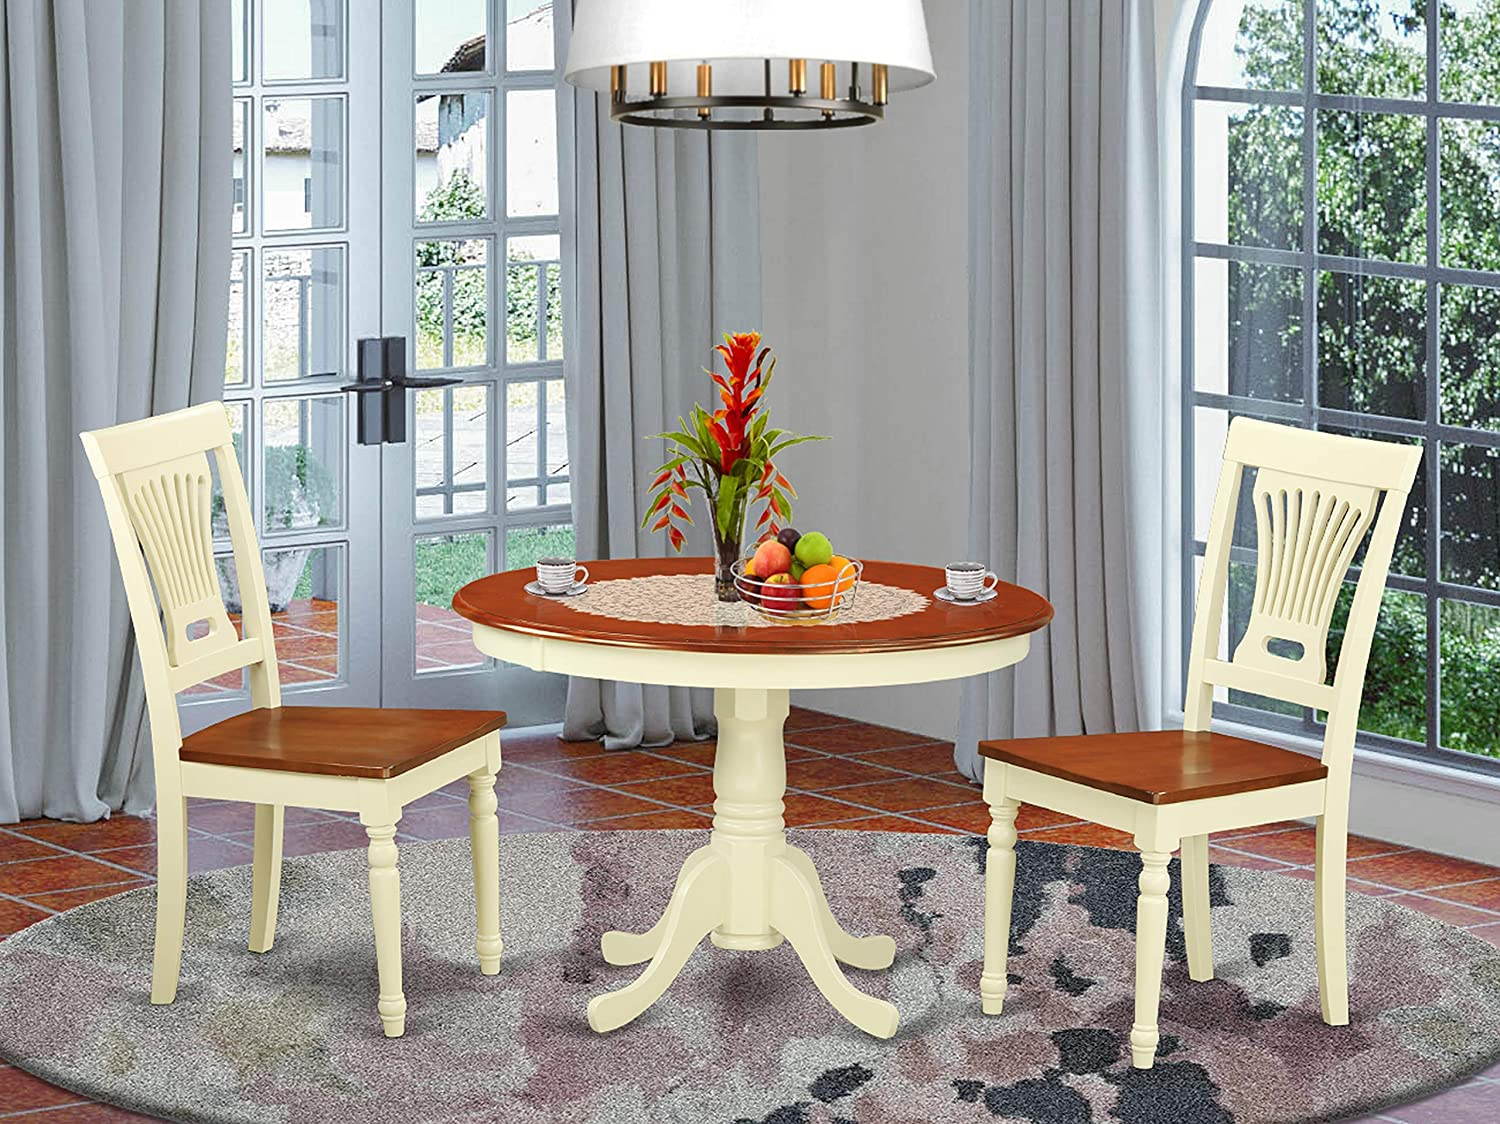 3 Pc set with a Round Dinette Table and 2 Wood Dinette Chairs in Buttermilk and Cherry .